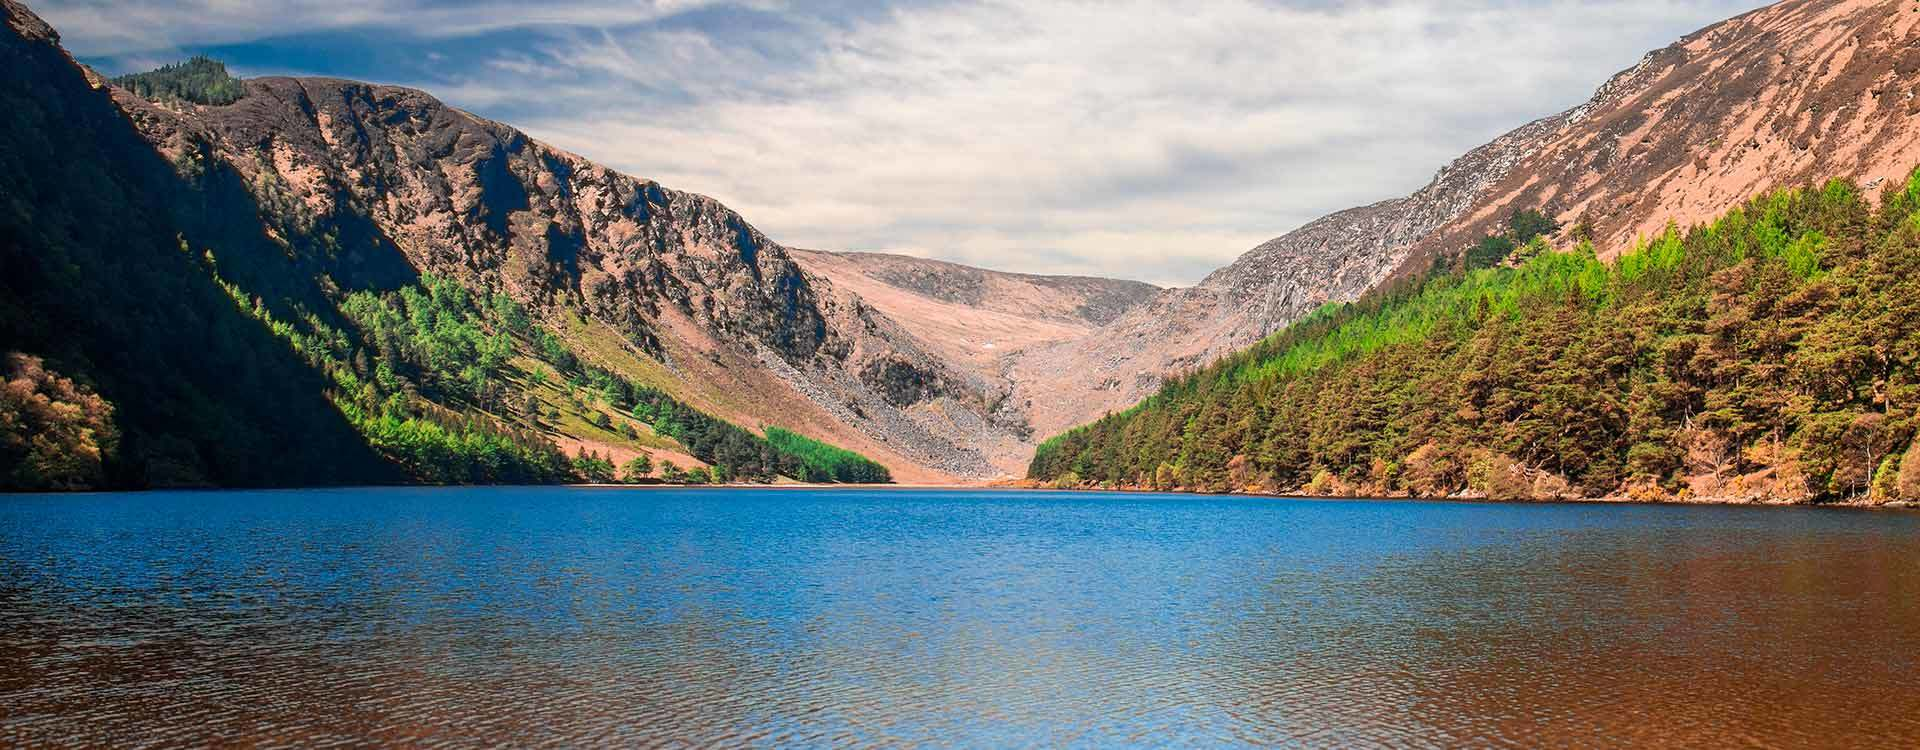 Glendalough, Wicklow & Medieval Kilkenny Day Tour from Dublin